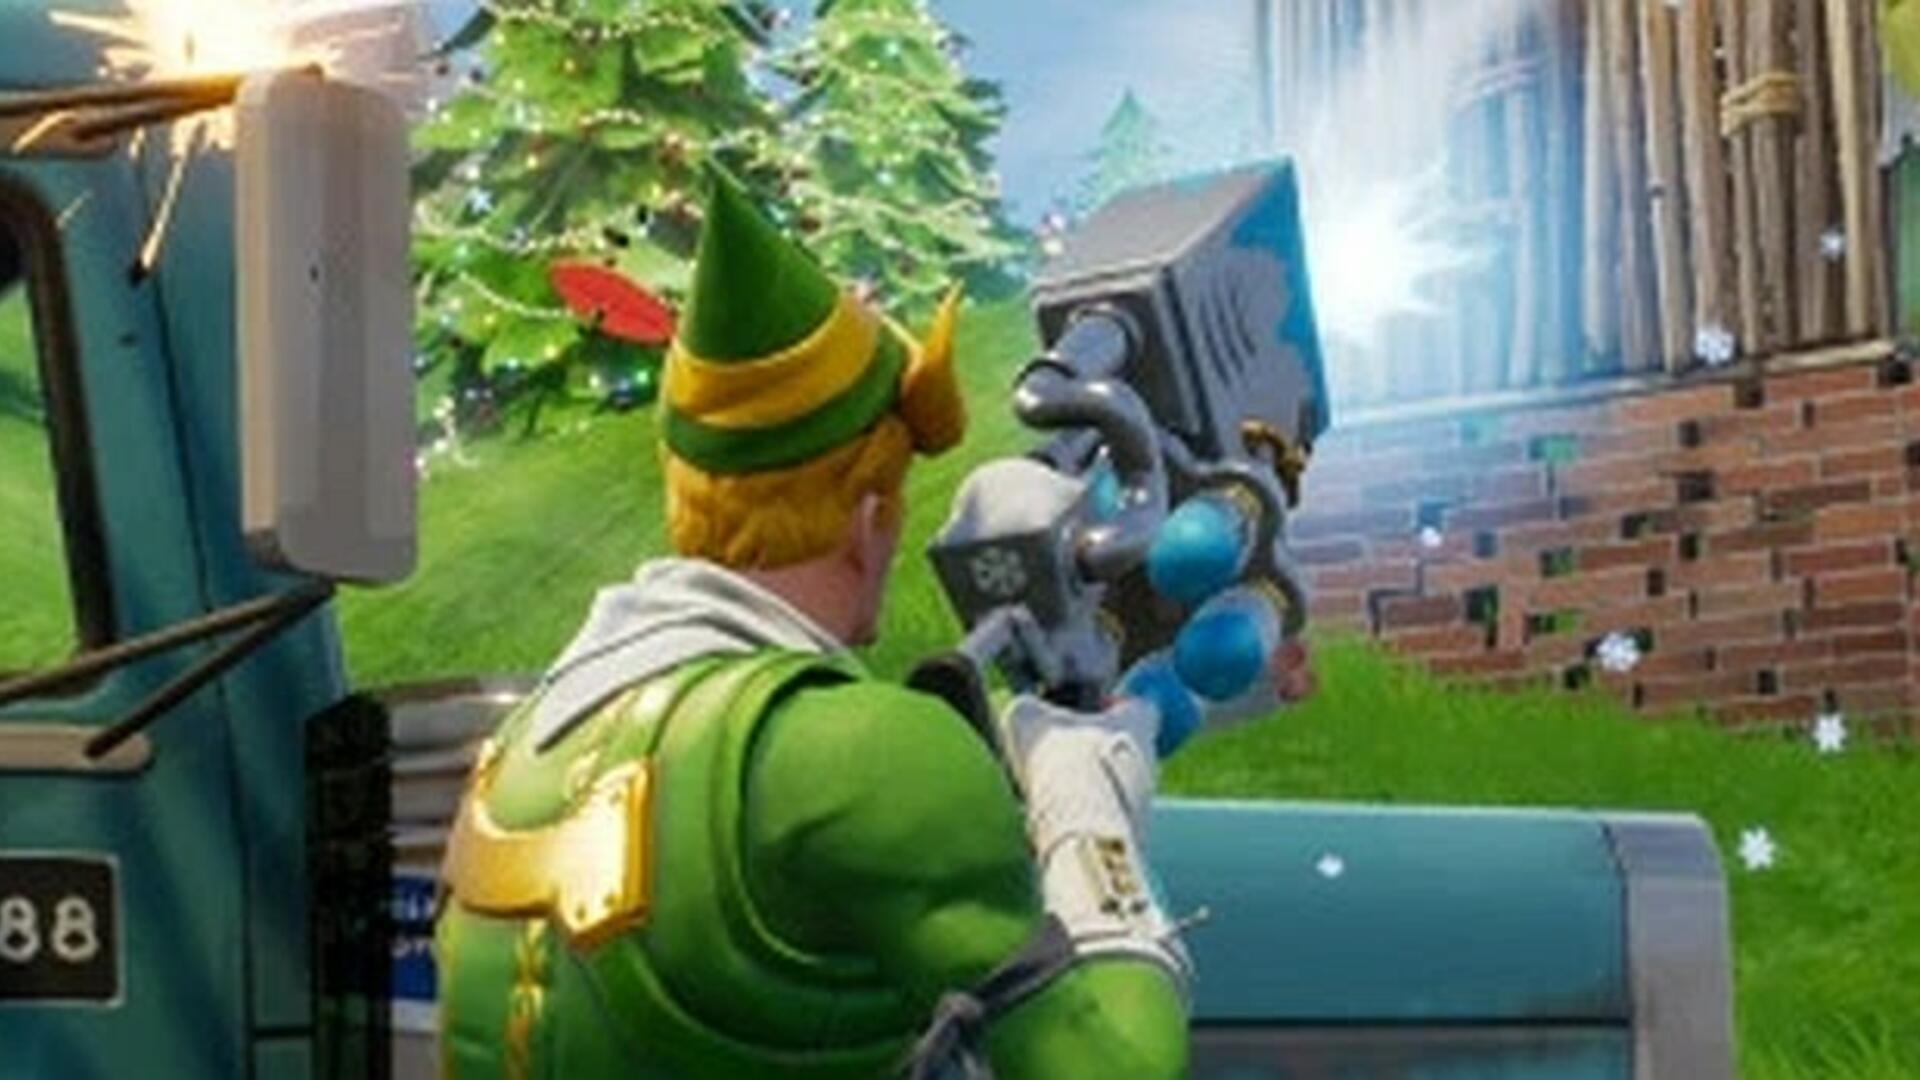 Fortnite Switch - How to Get Fortnite on the Nintendo Switch, Fortnite Switch Cross-Play